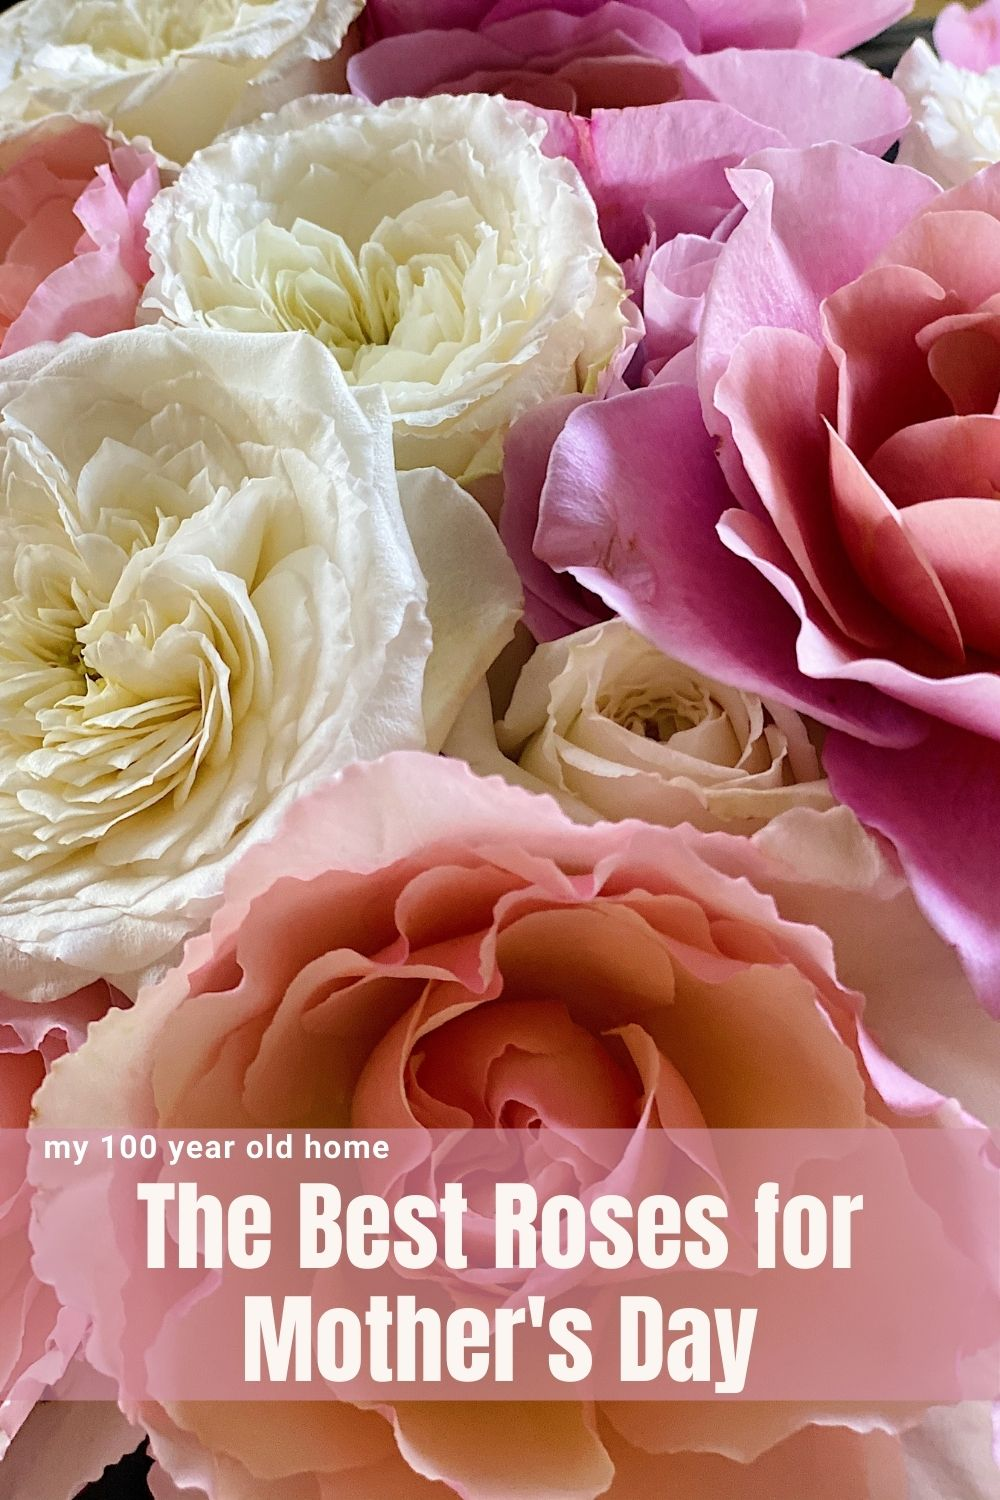 Now is the time to order roses for Mother's Day. Don't wait until it's too late to order these amazing and beautiful roses from Grace Rose Farm!